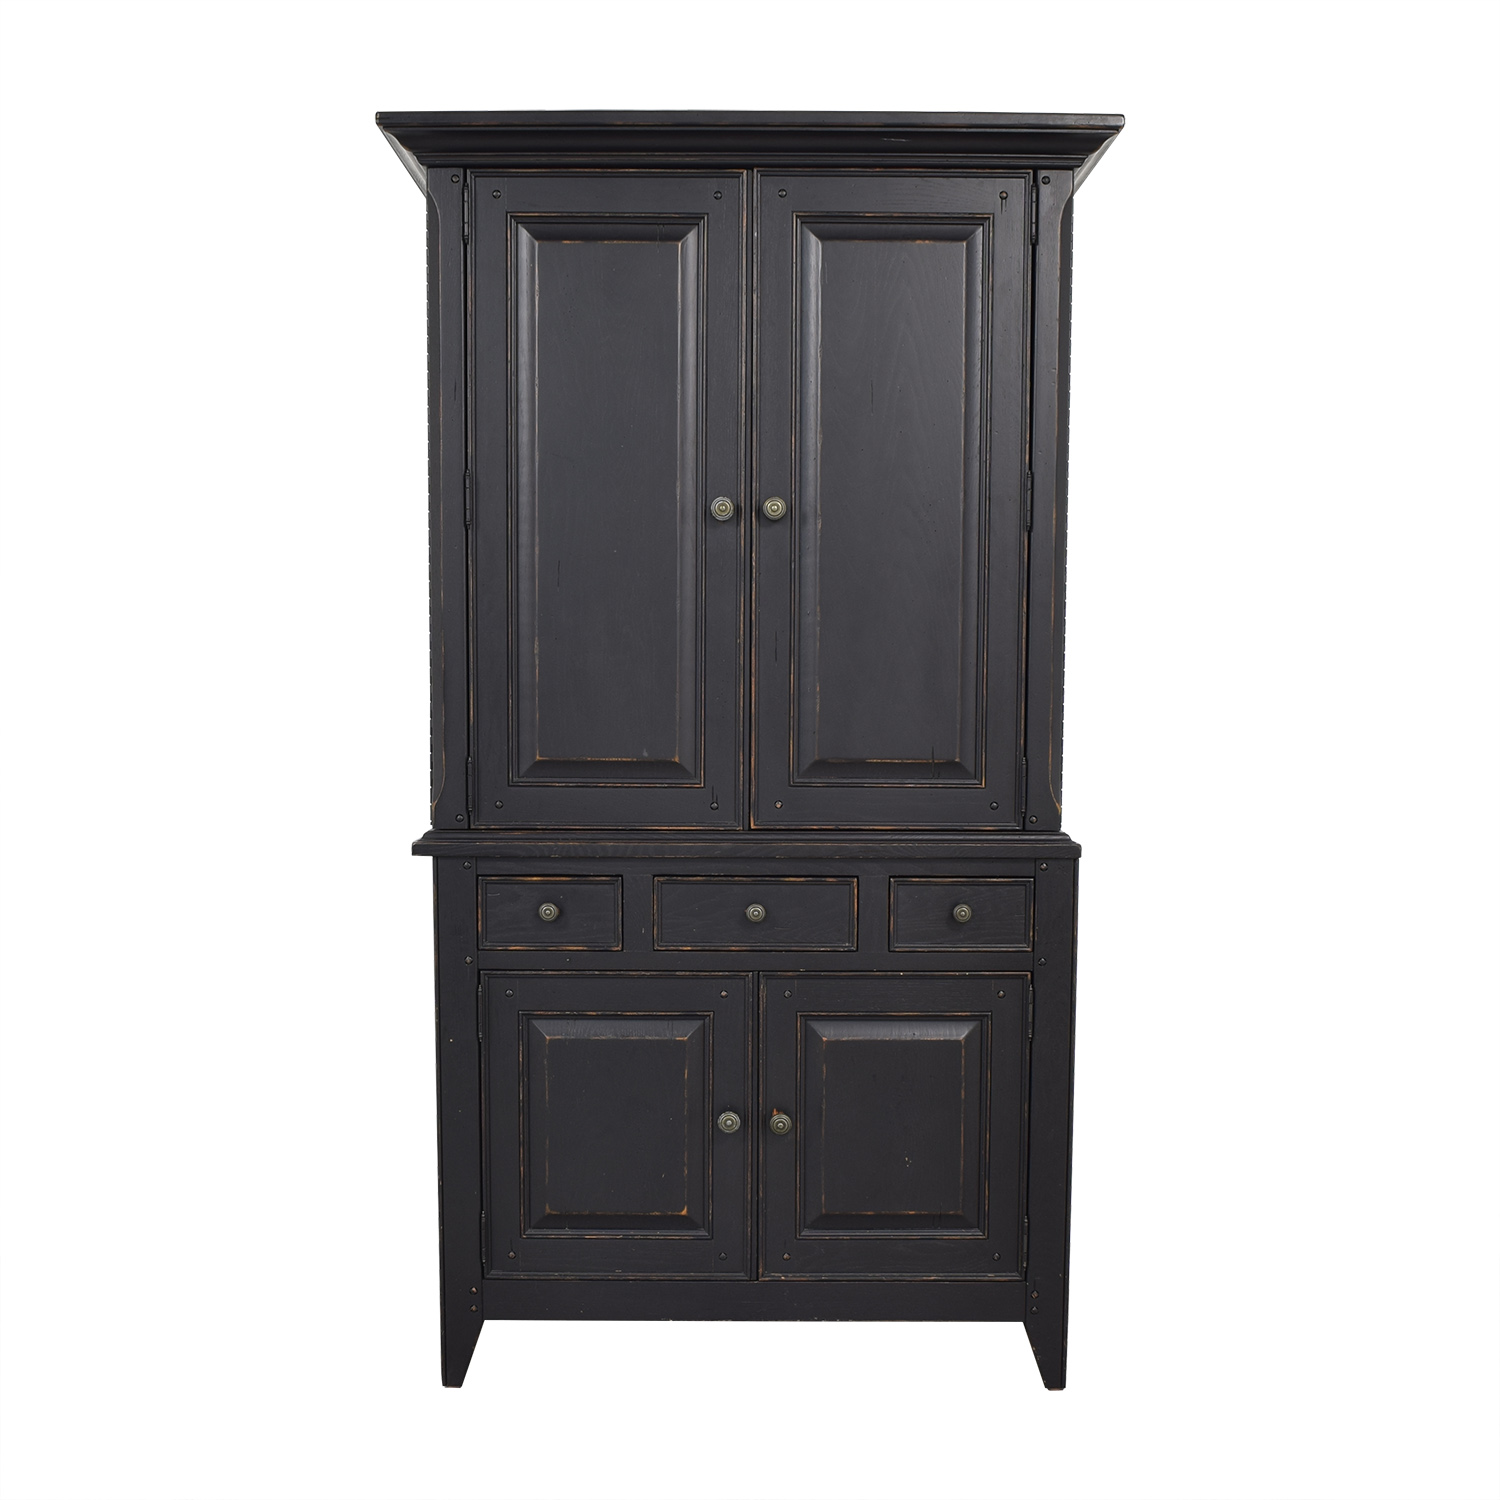 Thomasville Urban Retreat Armoire sale